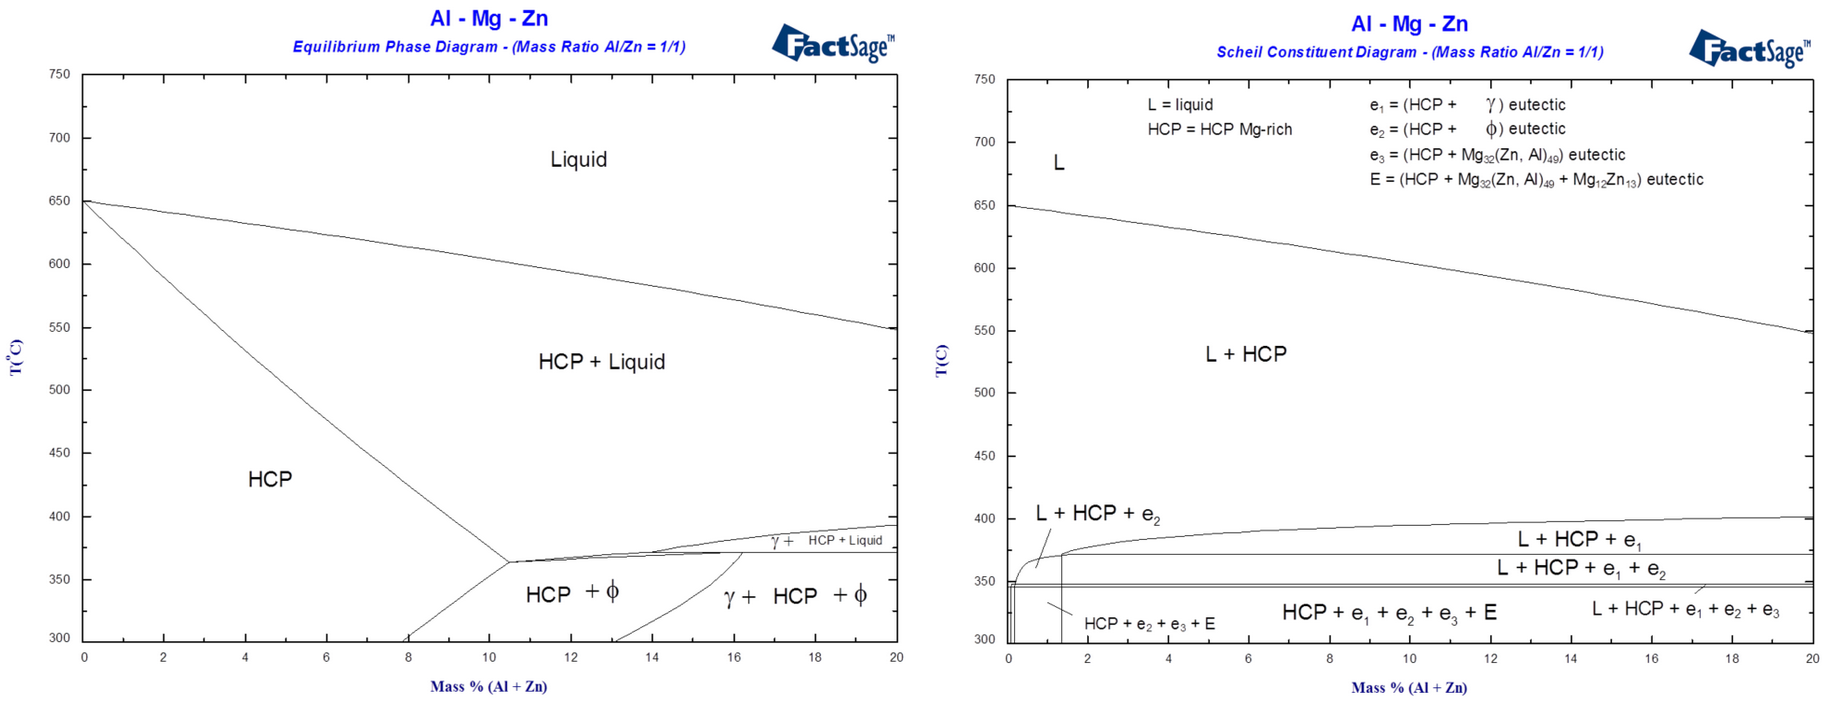 Whats new in phase diagram diagrams of the al mg zn ternary system for mg rich alloys at constant mass ratio alzn 11 1 calculated phase diagram and equilibrium solidification ccuart Choice Image